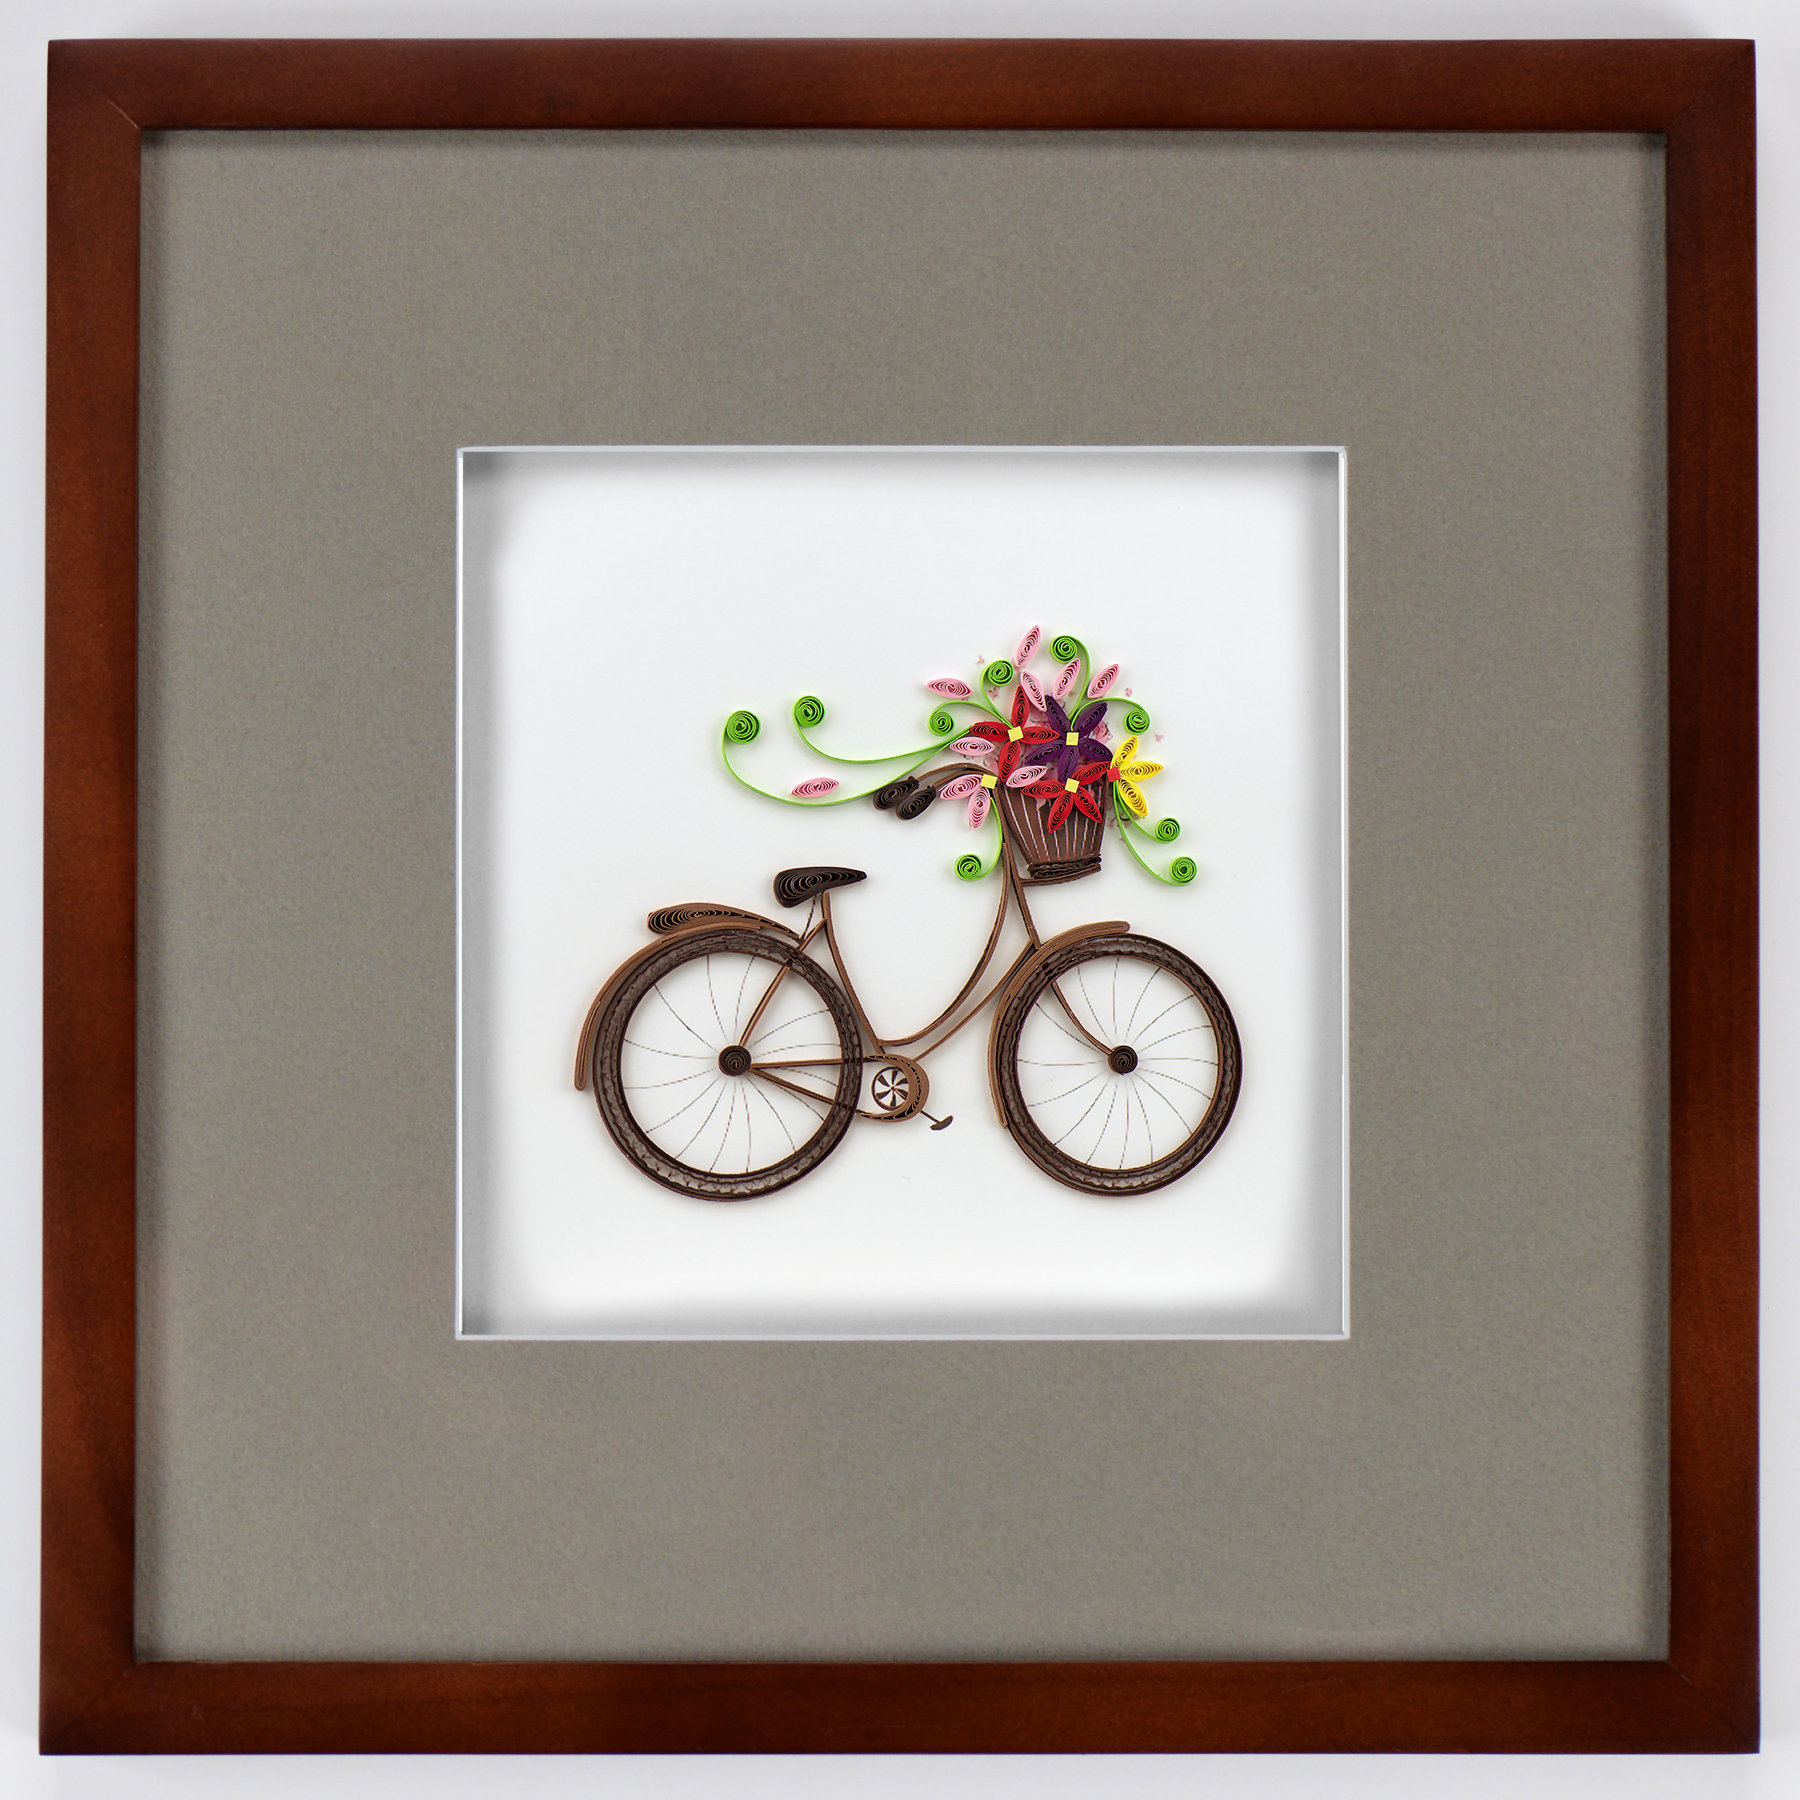 Bike Wall Decor By August Grove Regarding Well Known August Grove Bicycle With Flower Basket Framed Wall Decor (View 10 of 20)